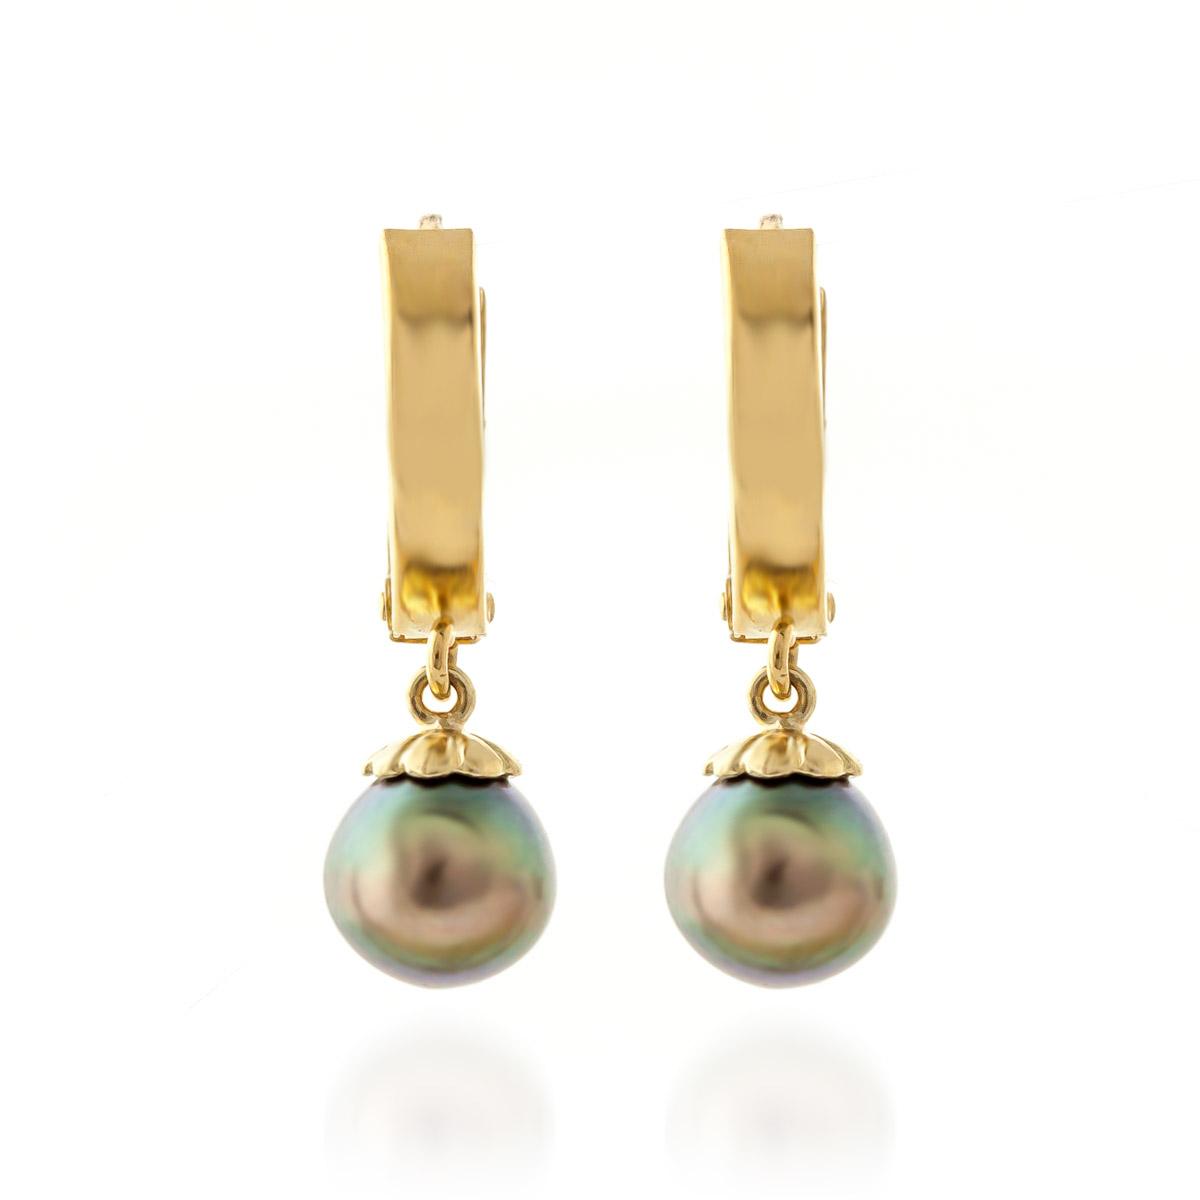 Black Pearl Drop Earrings 4.0ctw in 9ct Gold